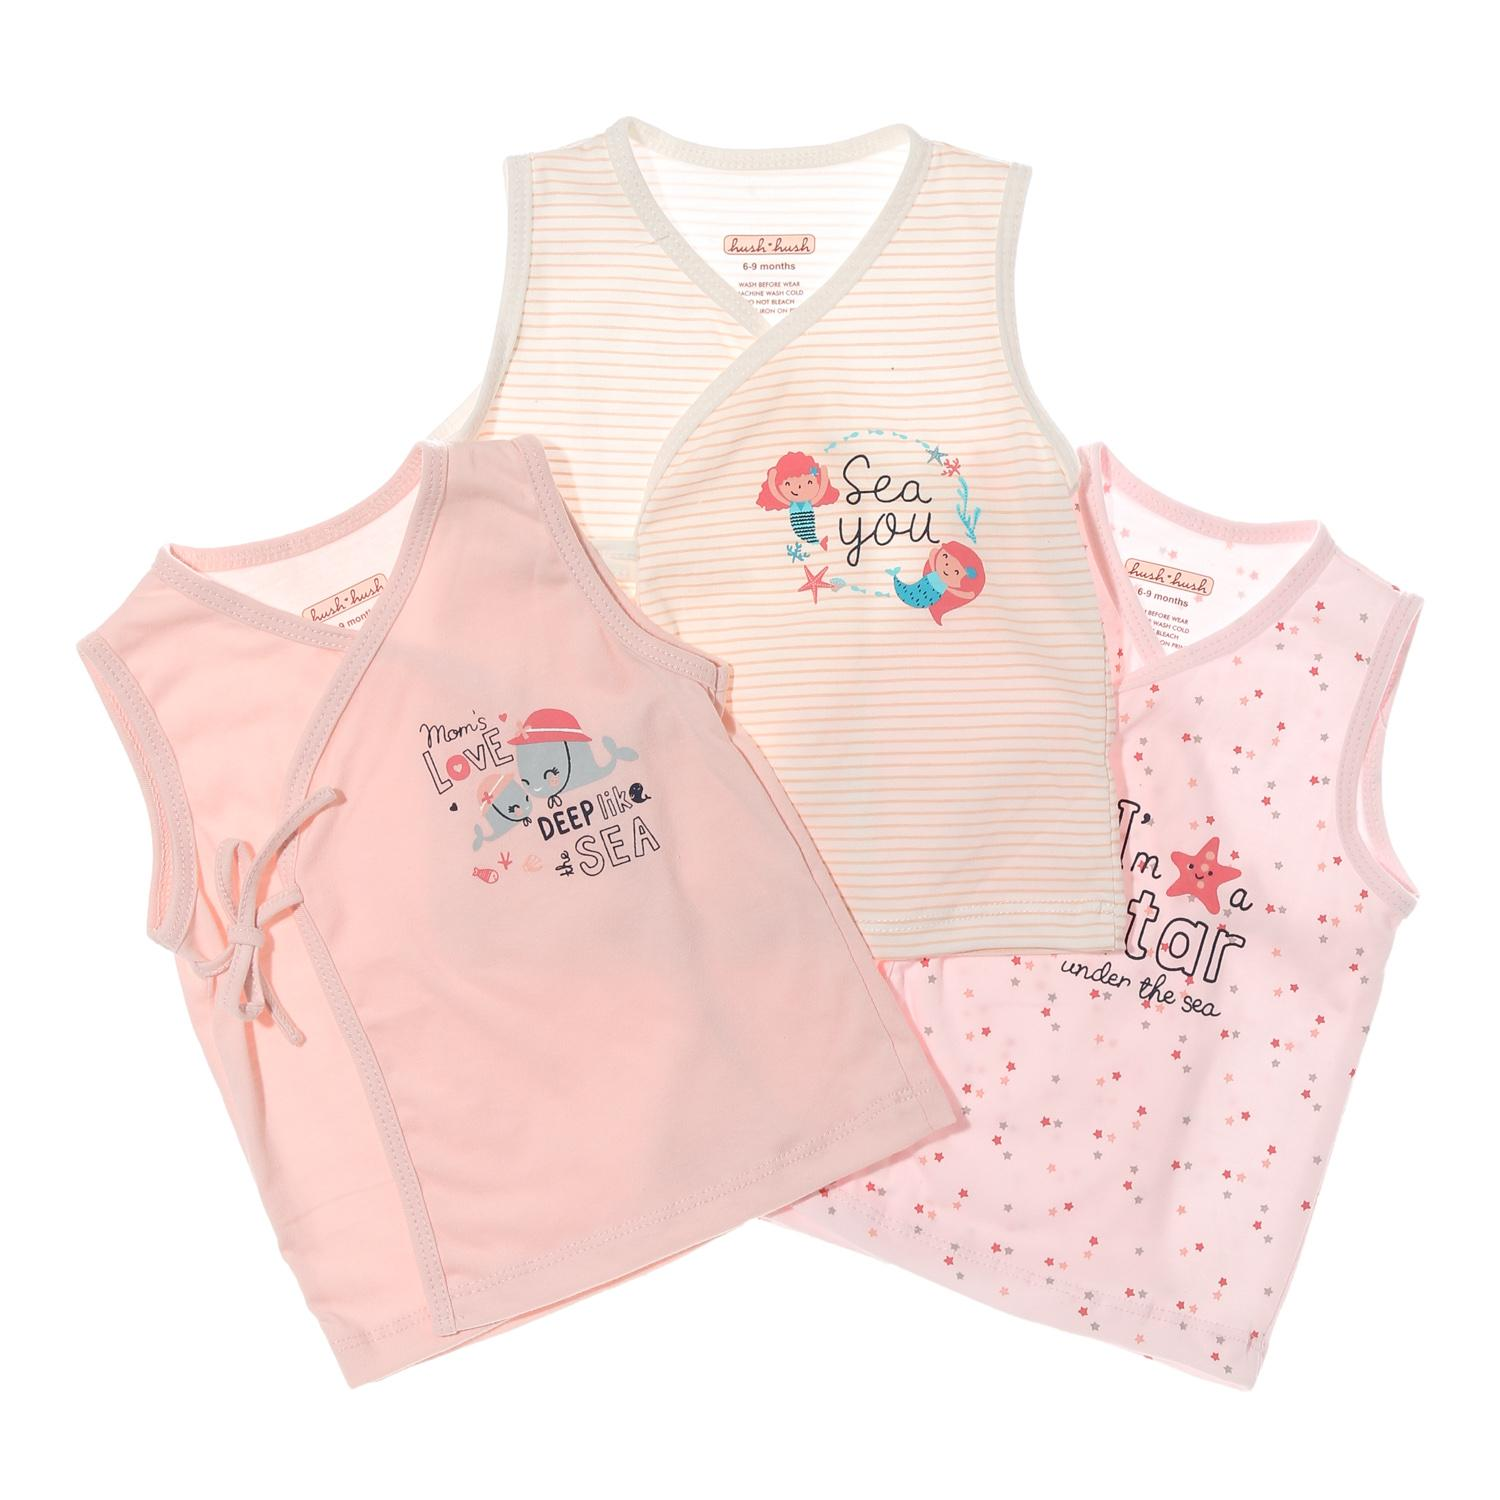 Hush Hush Baby Girls 3-Piece Stars Under The Sea Tie-Side Top Set By The Sm Store.